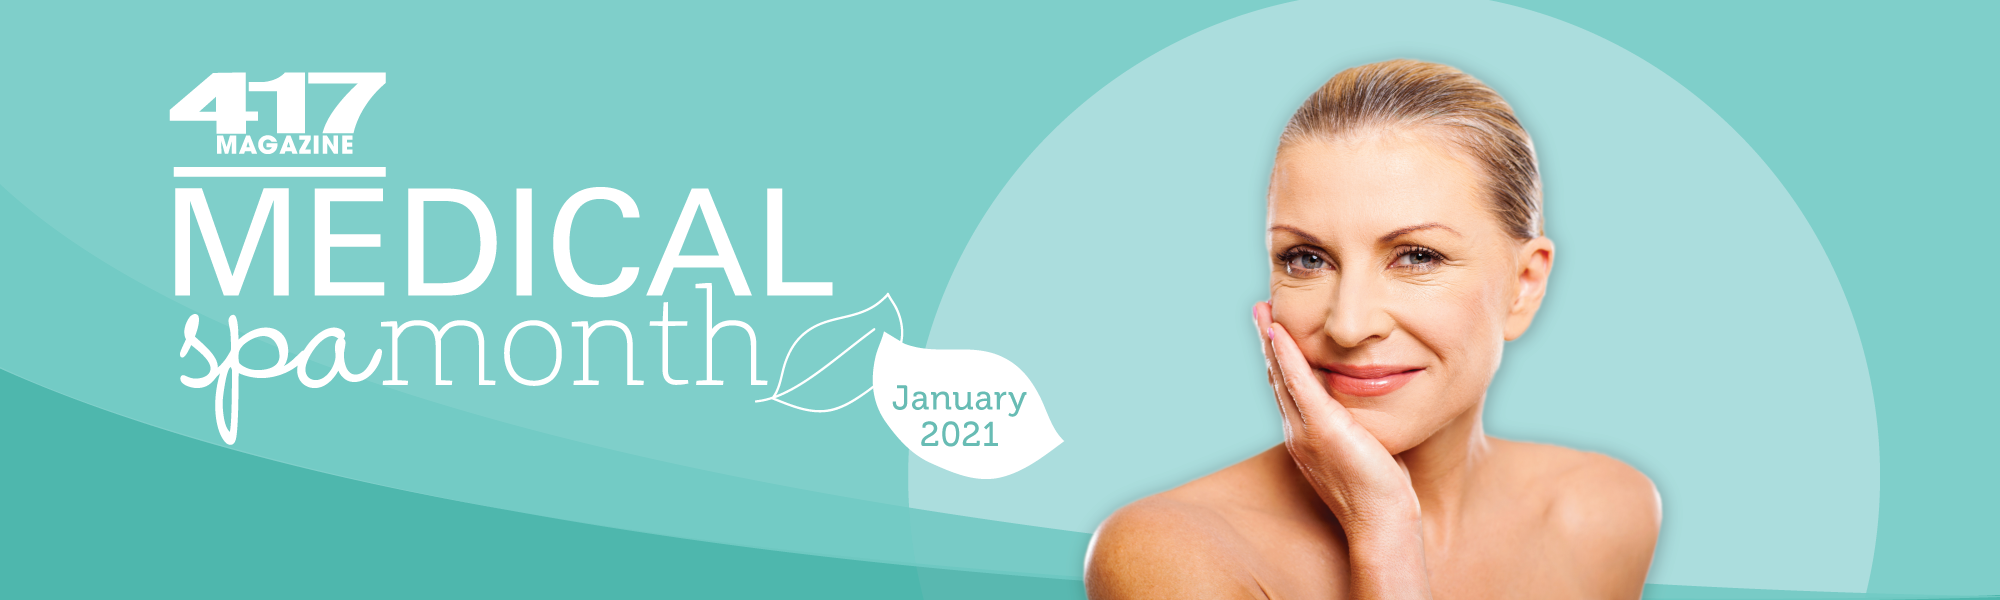 417 Magazine Medical Spa Month Springfield MO